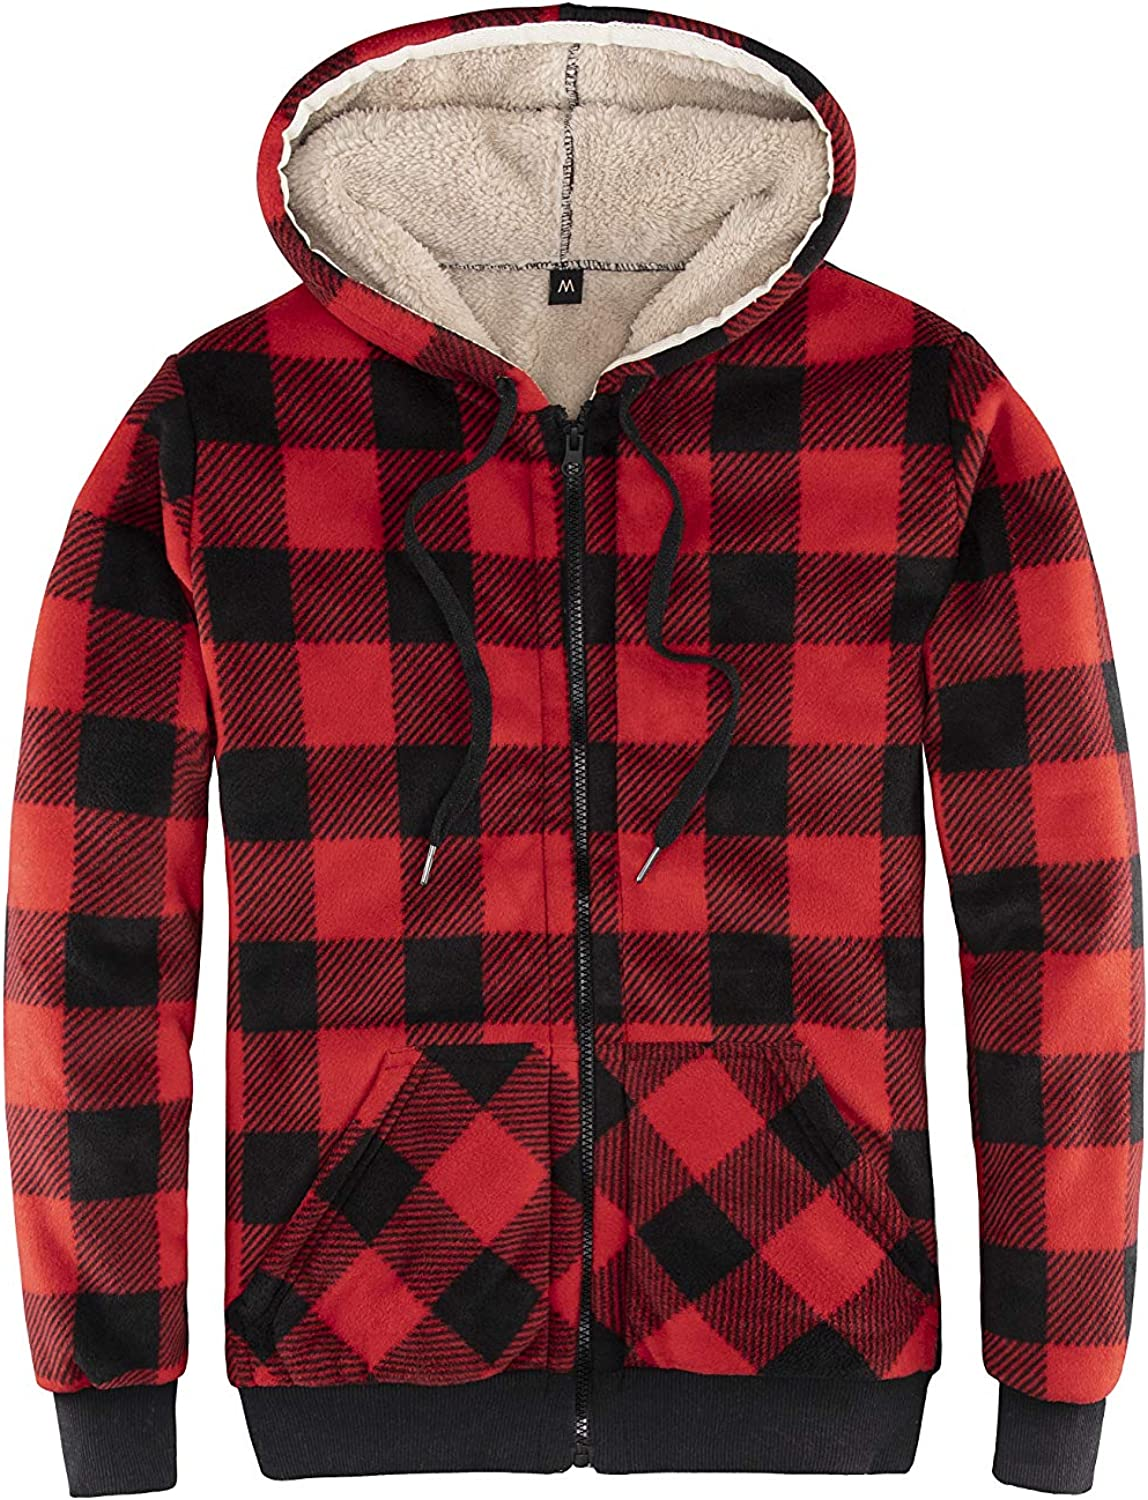 ThCreasa Womens Sherpa Fleece Lined Hoodie Jacket Plaid Flannel Zip up Hooded Sweatshirt Jackets: Clothing